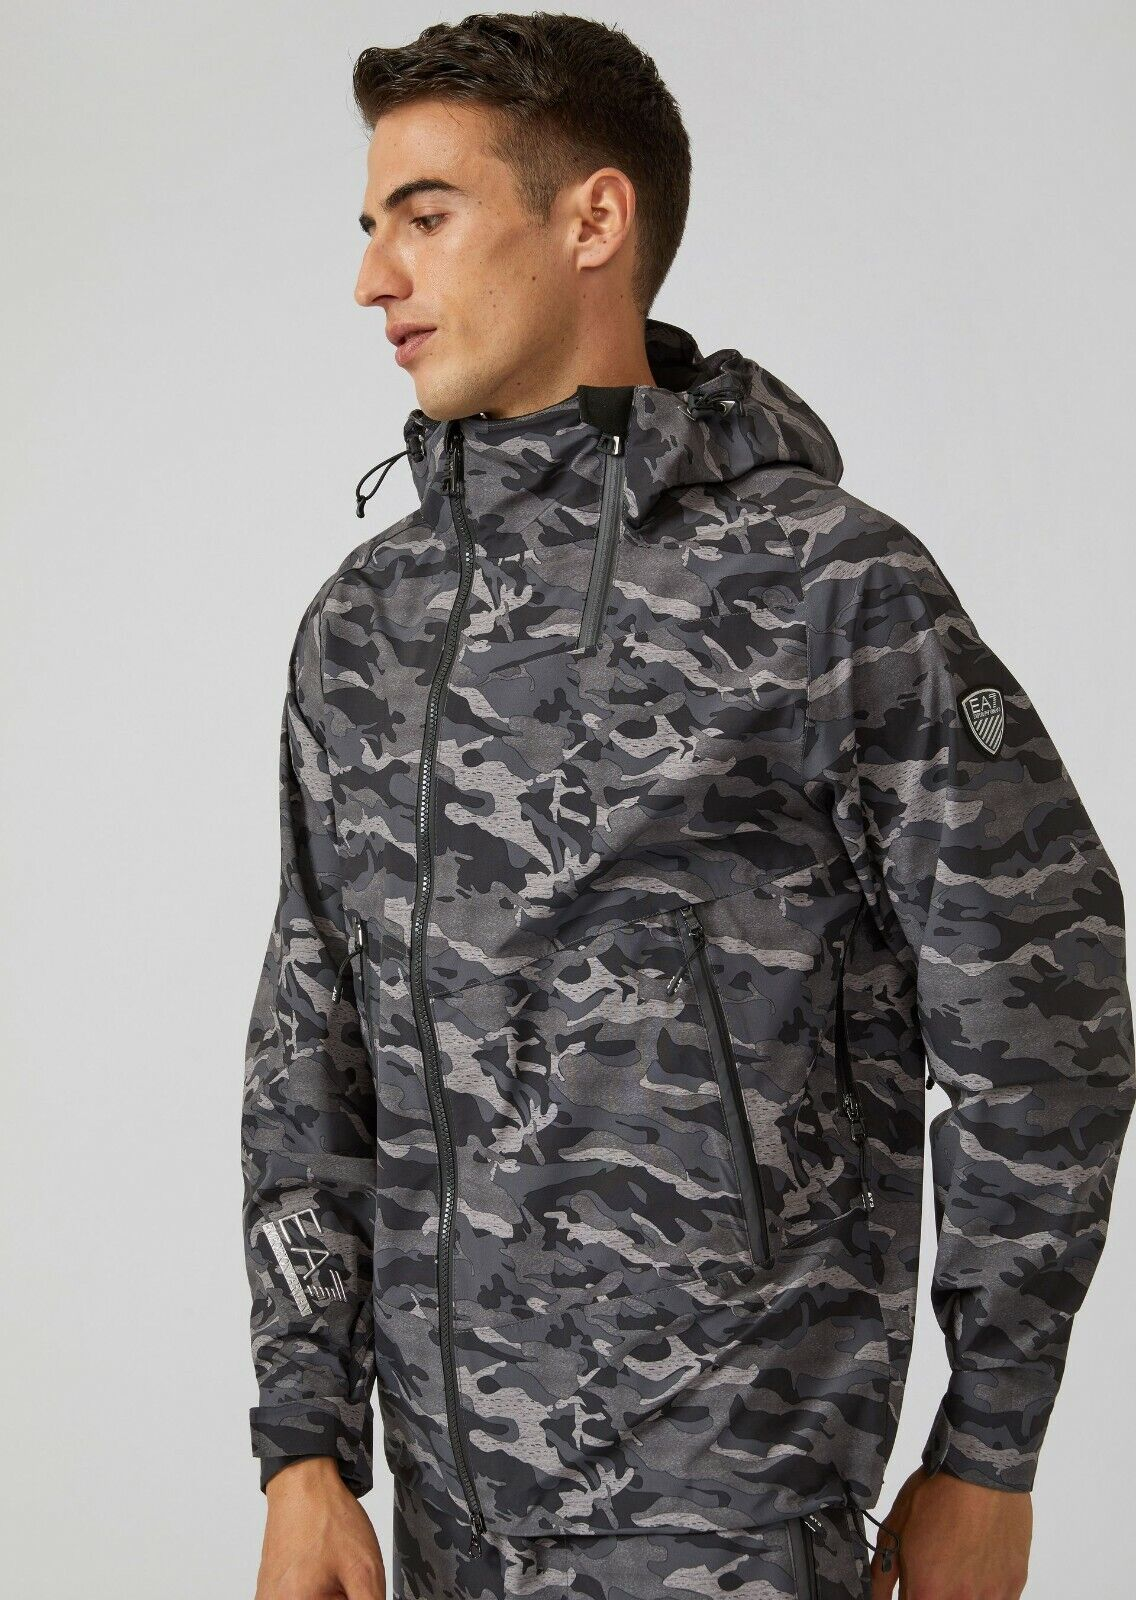 Emporio Armani EA7 Technical Ski Jacket Coat Size S Camouflage NICE! Clothing, Shoes & Accessories